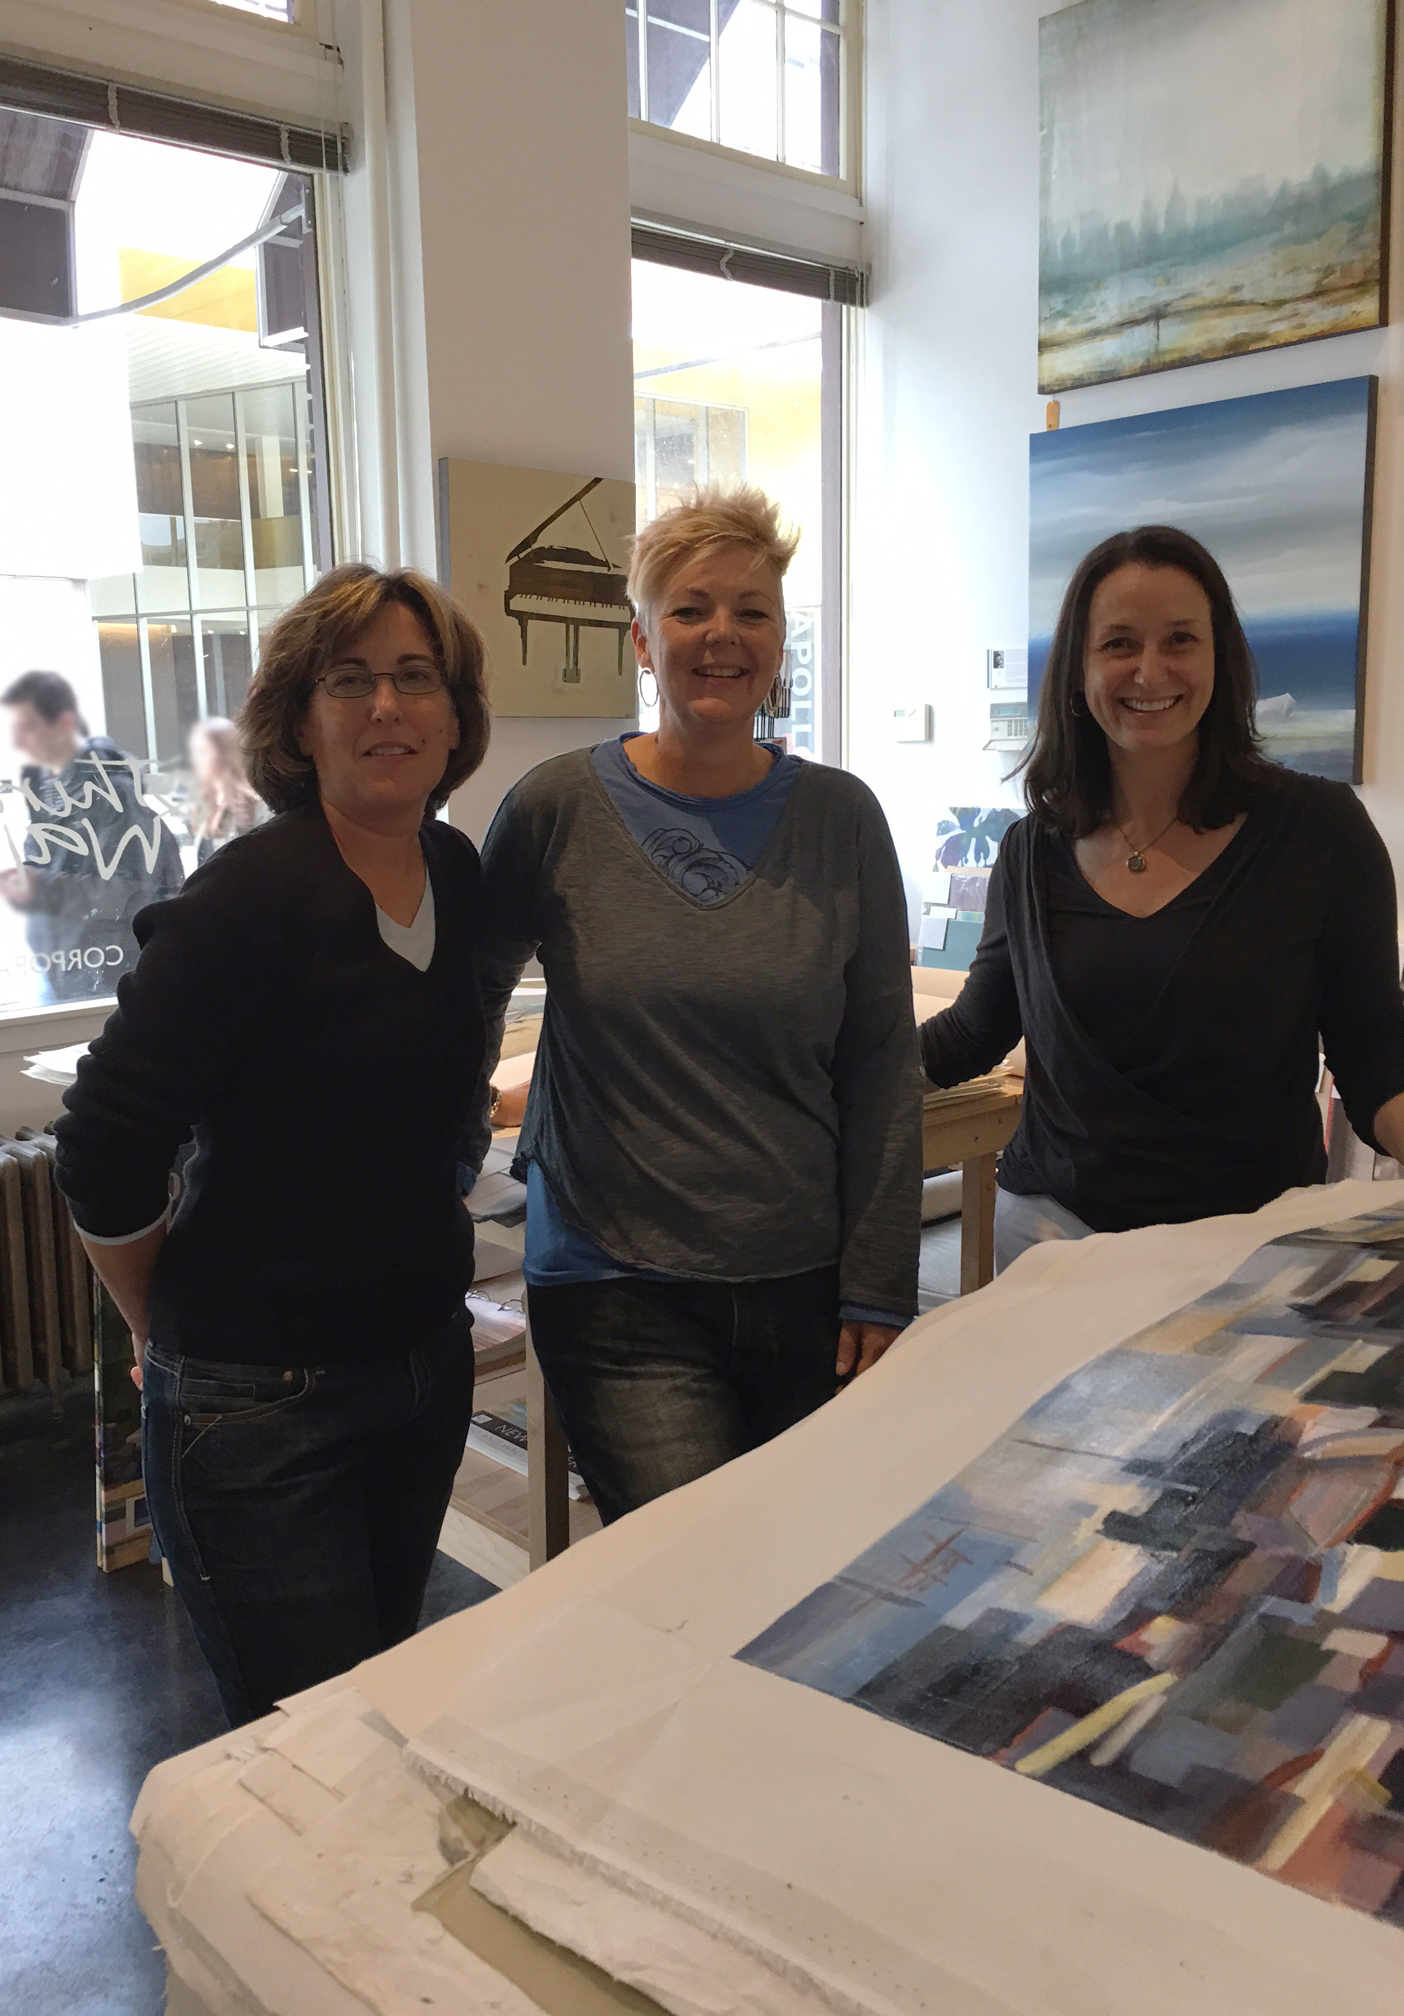 Penny Alspeth, Lisa Ridgers and Aimee Clarke in the 3&W showroom